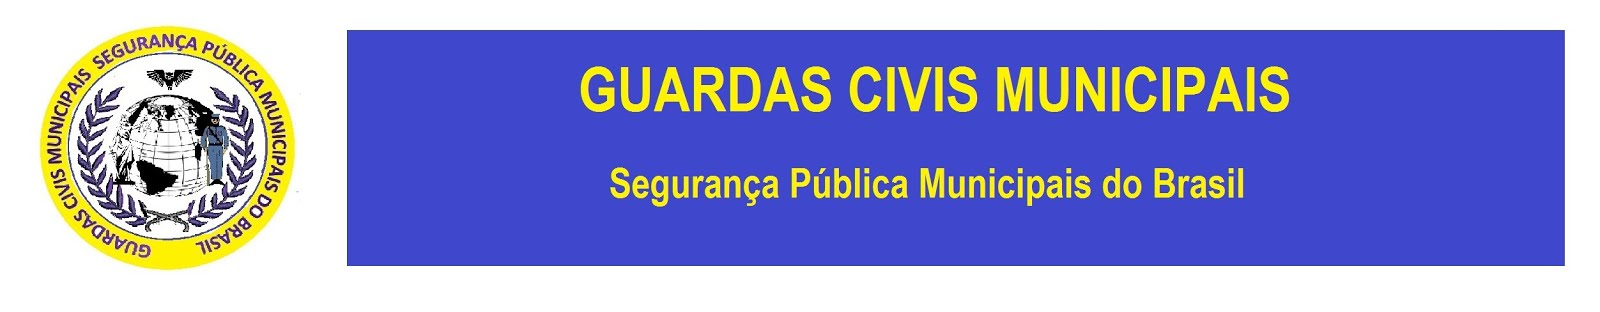 GUARDAS CIVIS MUNICIPAIS DO BRASIL